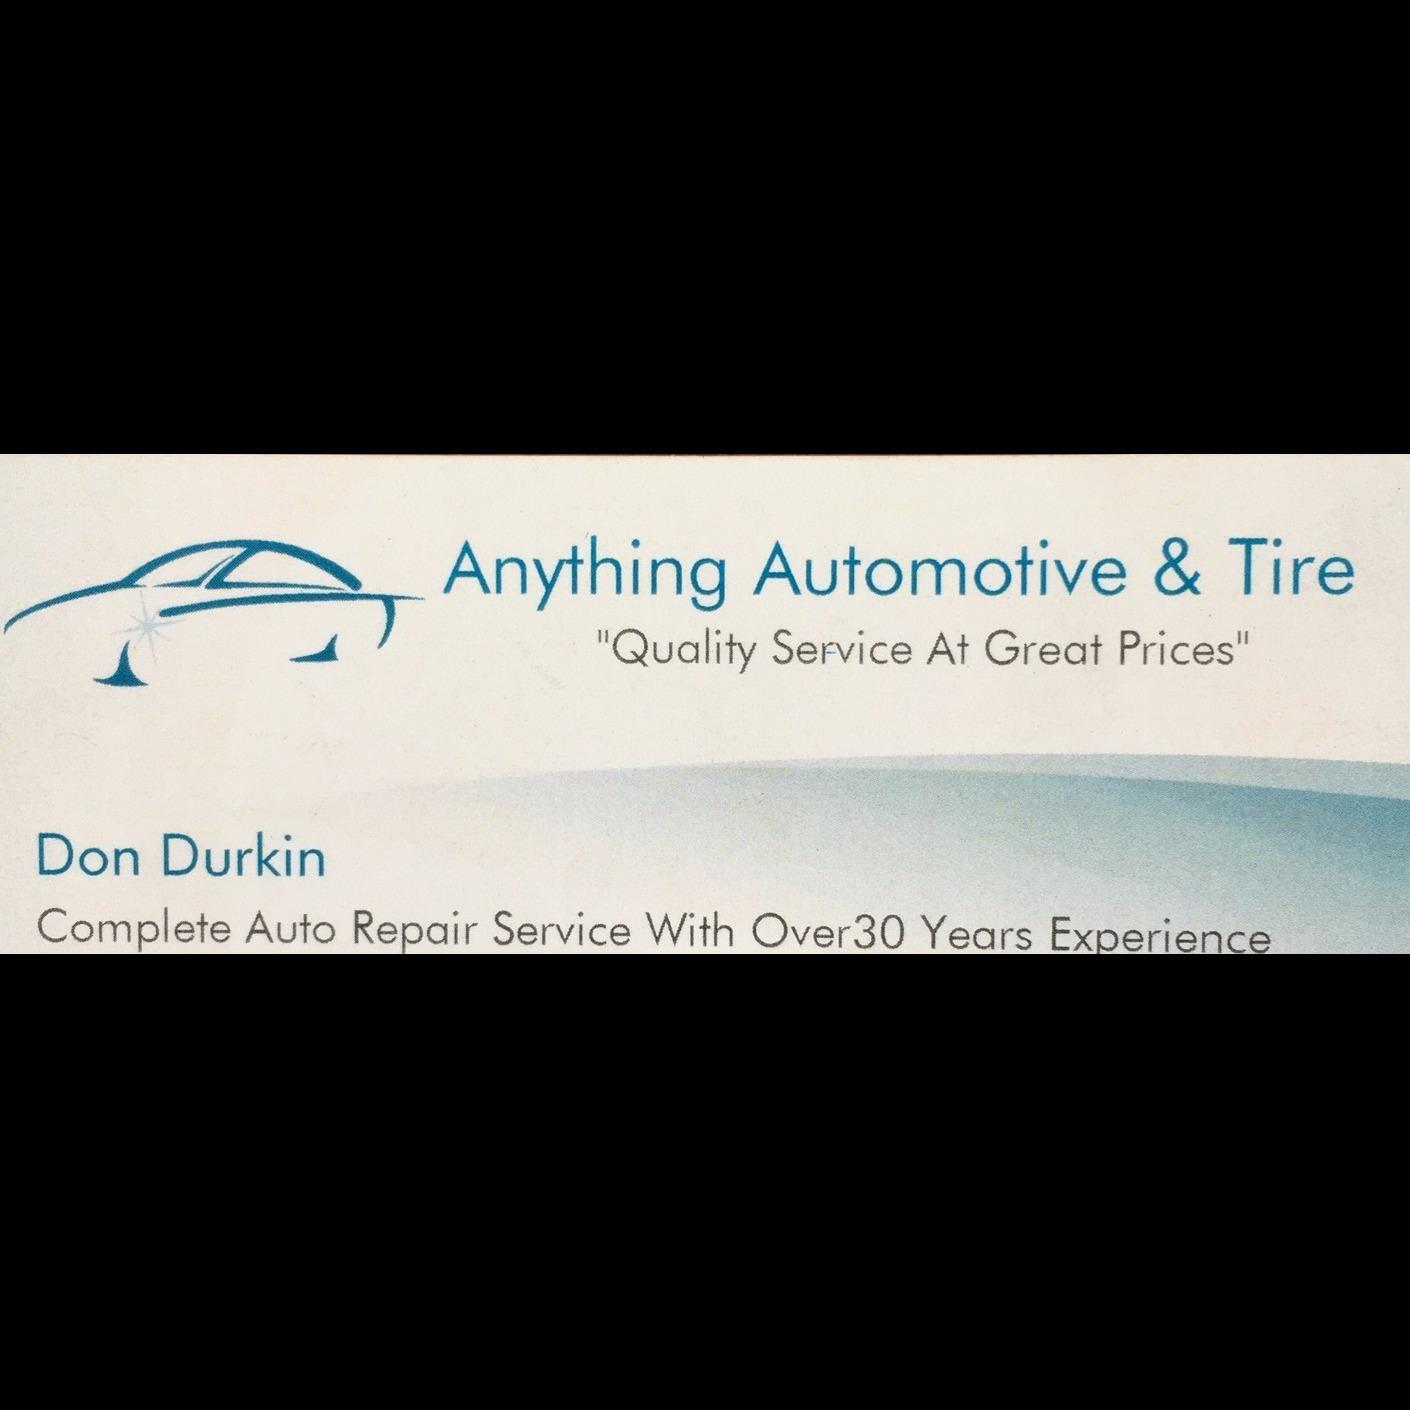 Anything Automotive & Tire